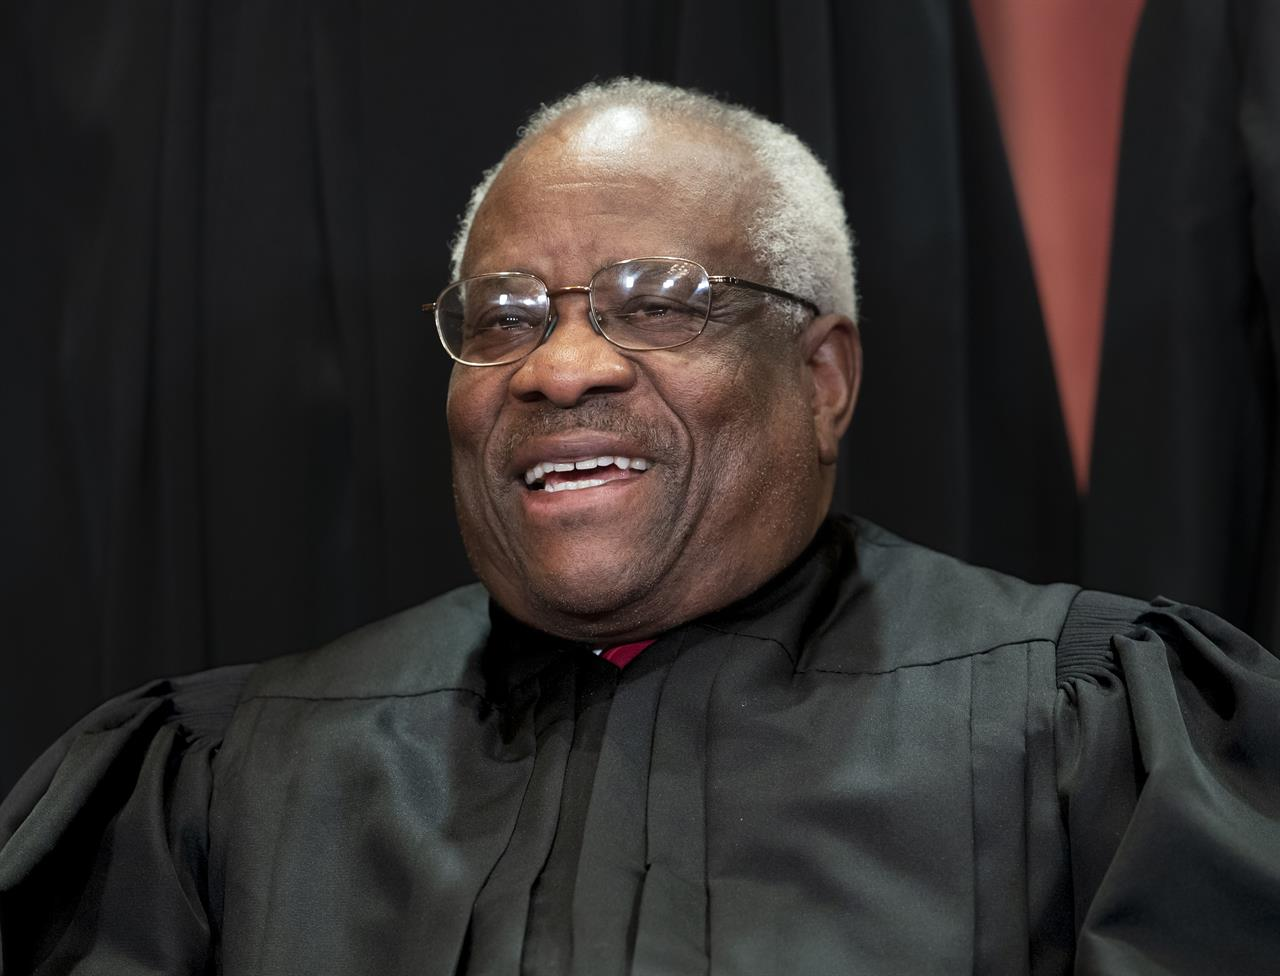 Justice Thomas maps own course, at wheel of his 40-foot bus